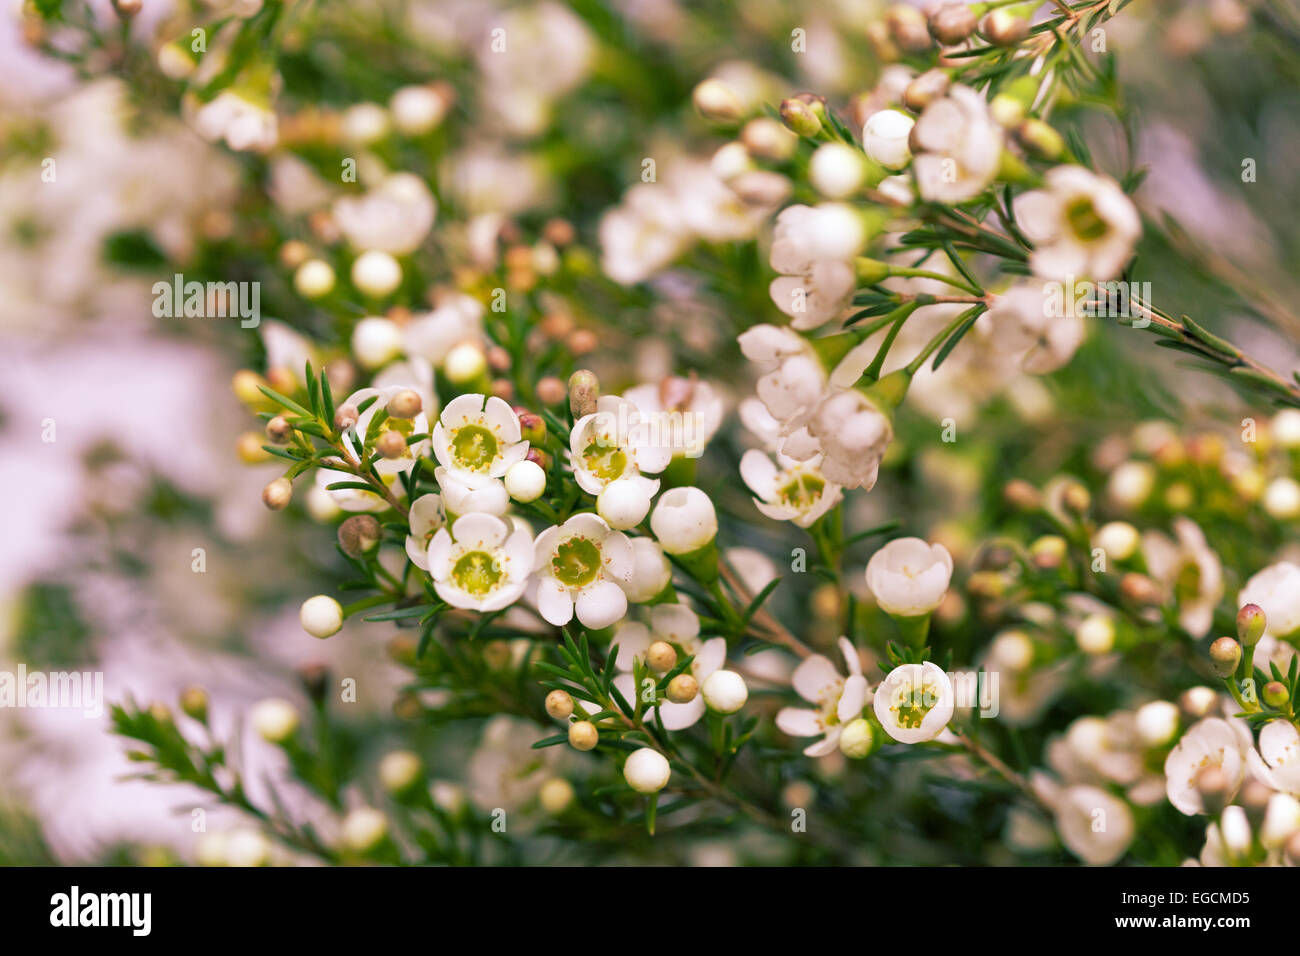 White Wax Flower In Natural Blured Background Stock Photo 78955441